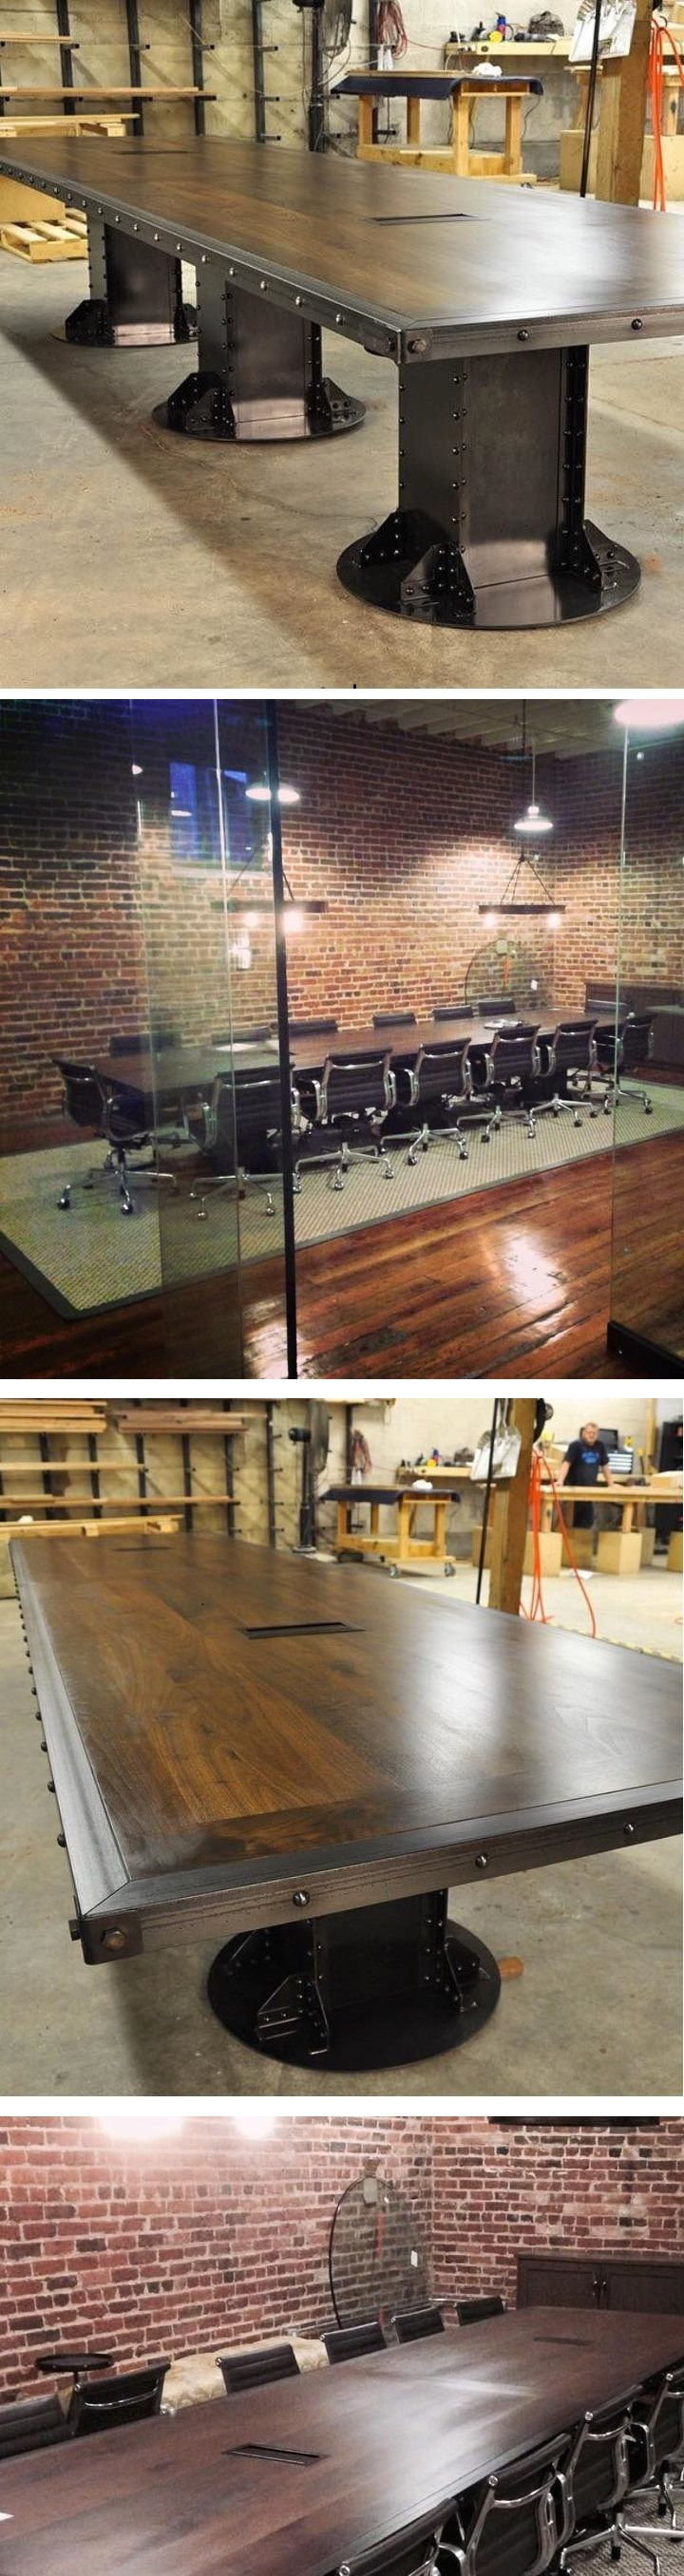 I Beam Conference Table, before and after shots by Vintage Industrial in Phoenix, AZ